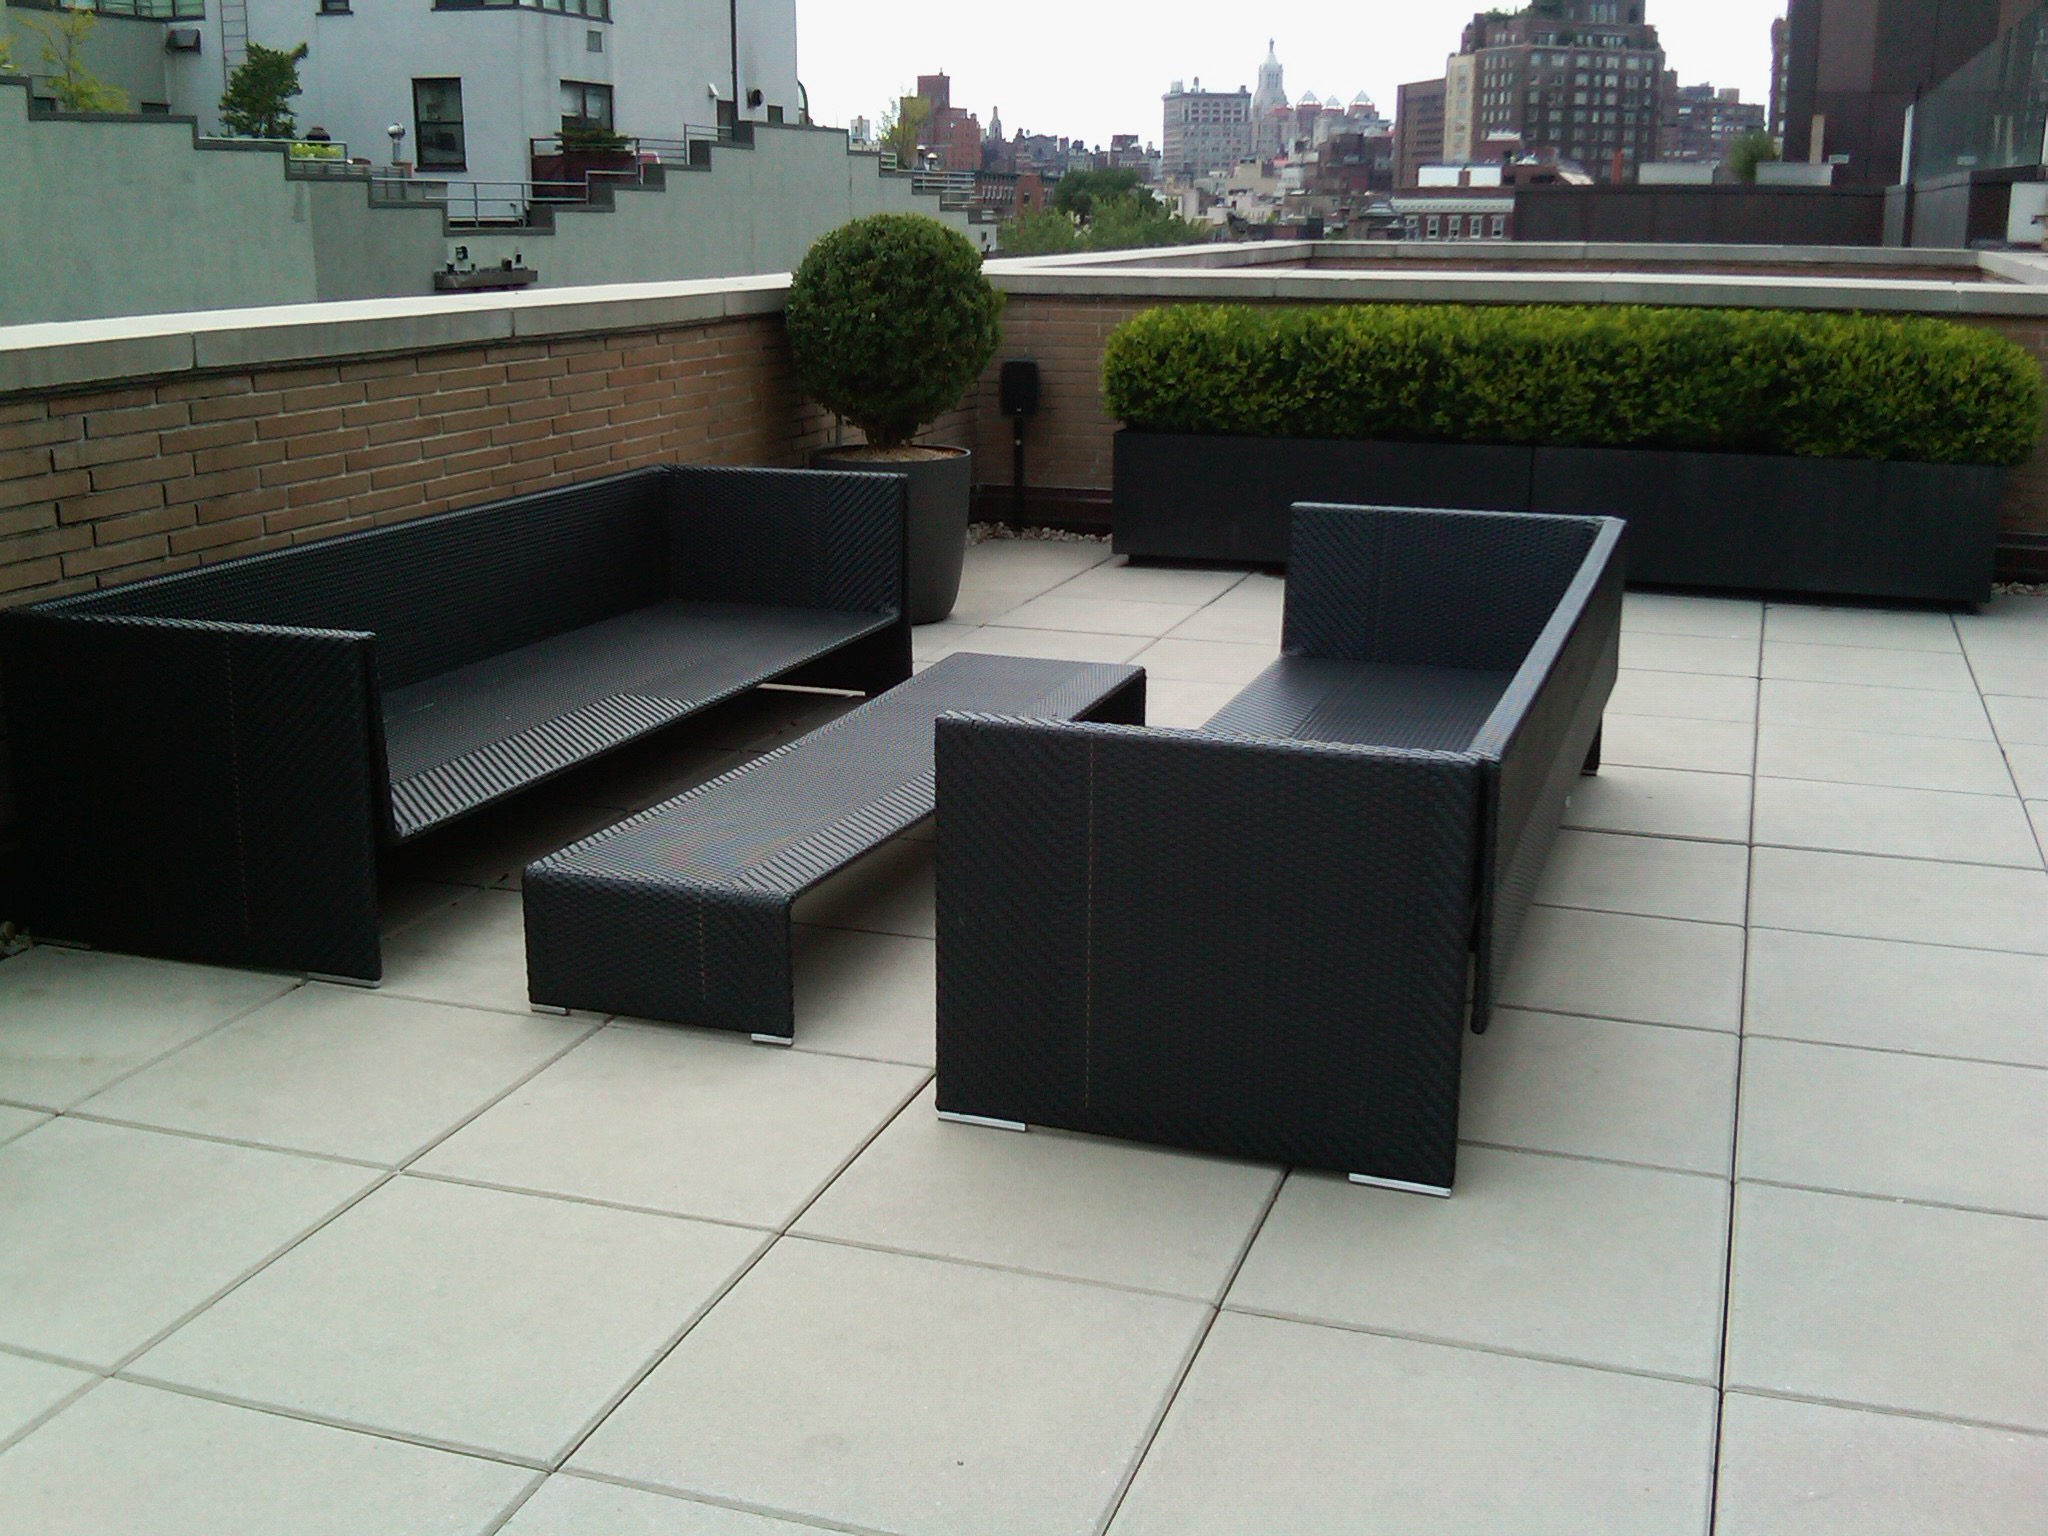 Modern Minimalist Garden Bench And Table Furniture (Image 13 of 15)